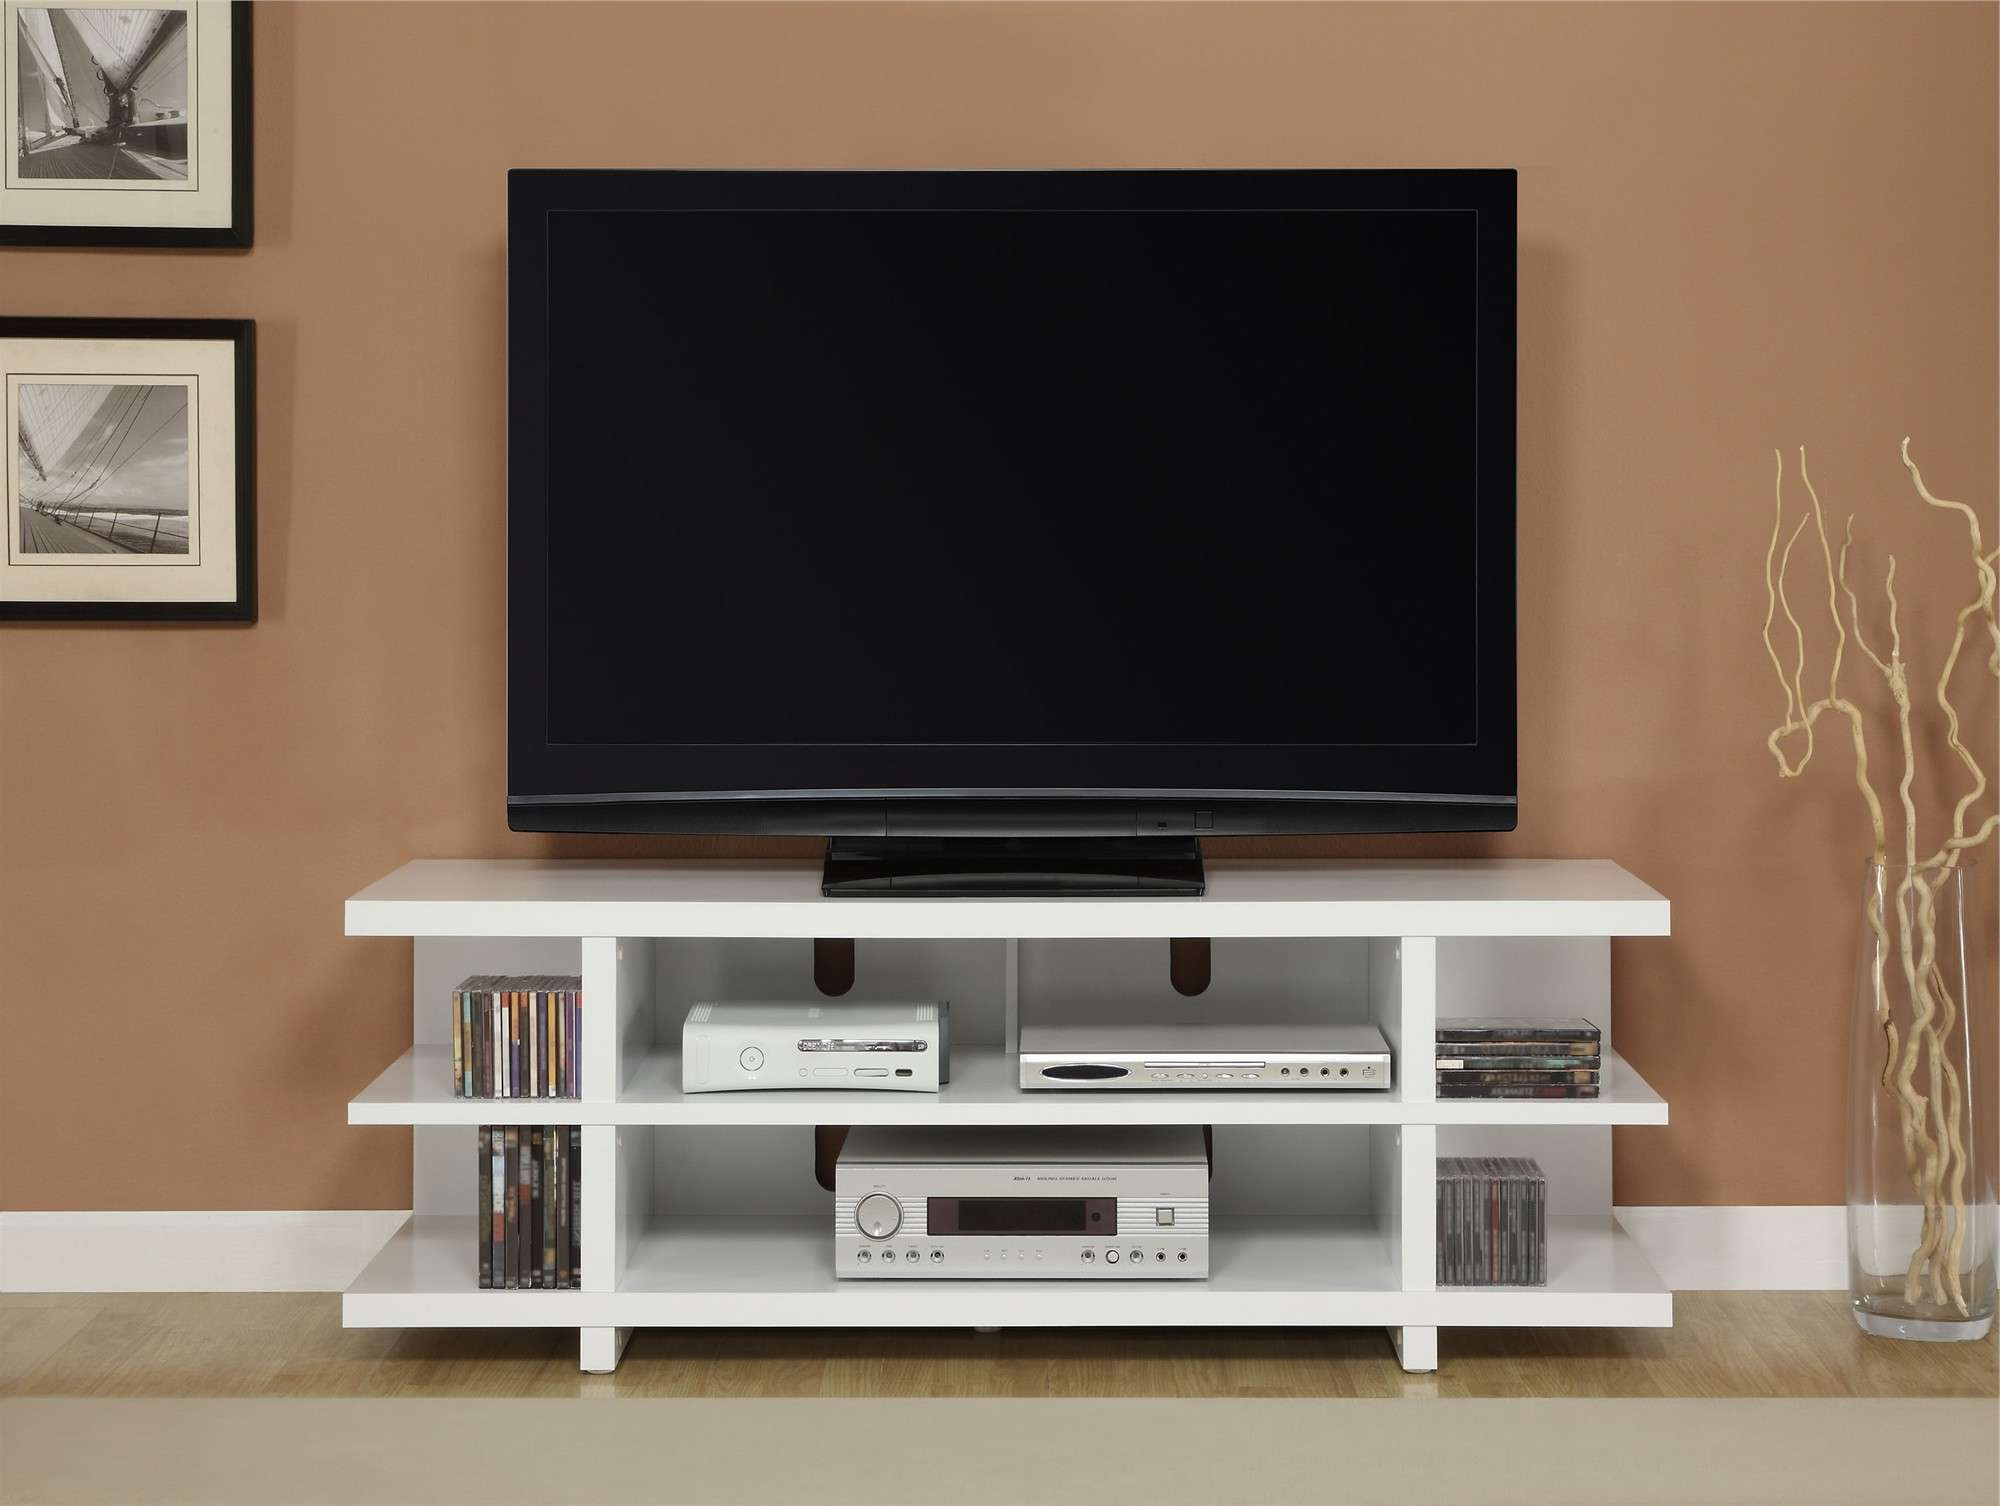 White Stained Wooden Tv Stand Having Several Open Shelves For For White Tv Stands For Flat Screens (View 15 of 15)